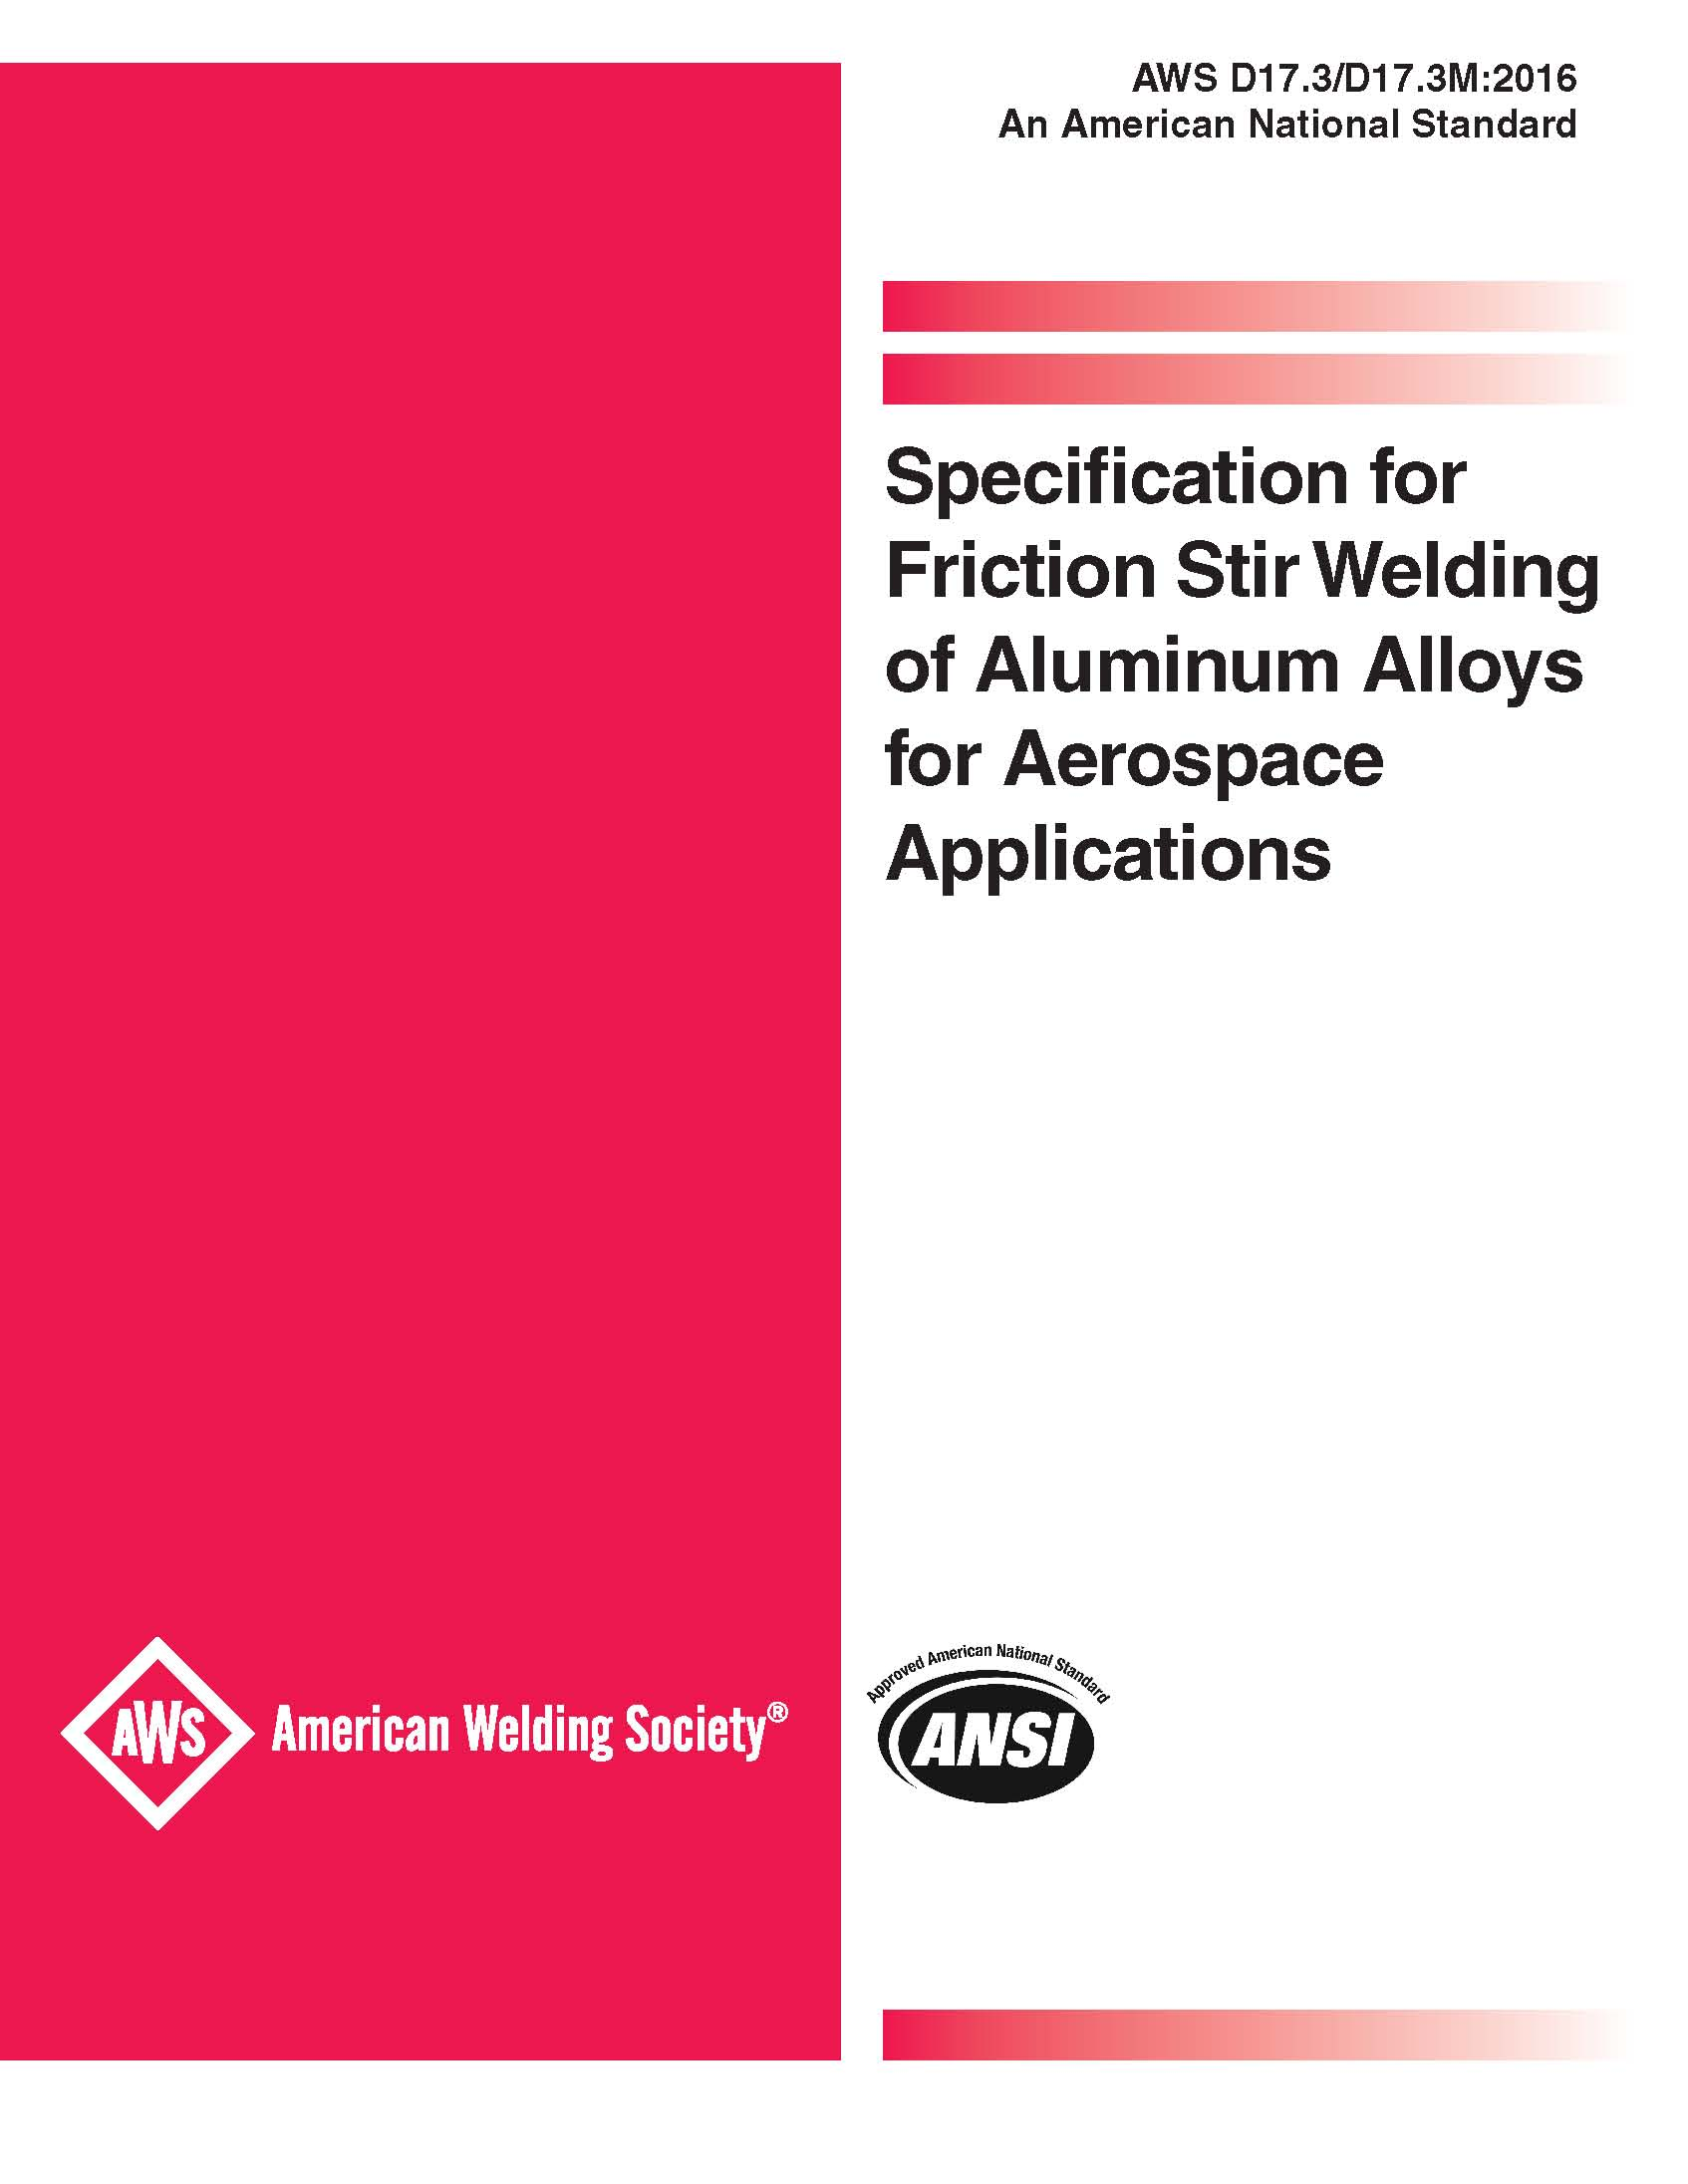 Picture of D17.3/D17.3:2016 SPECIFICATION FOR FRICTION STIR WELDING OF ALUMINUM ALLOYS FOR AEROSPACE APPLICATIONS